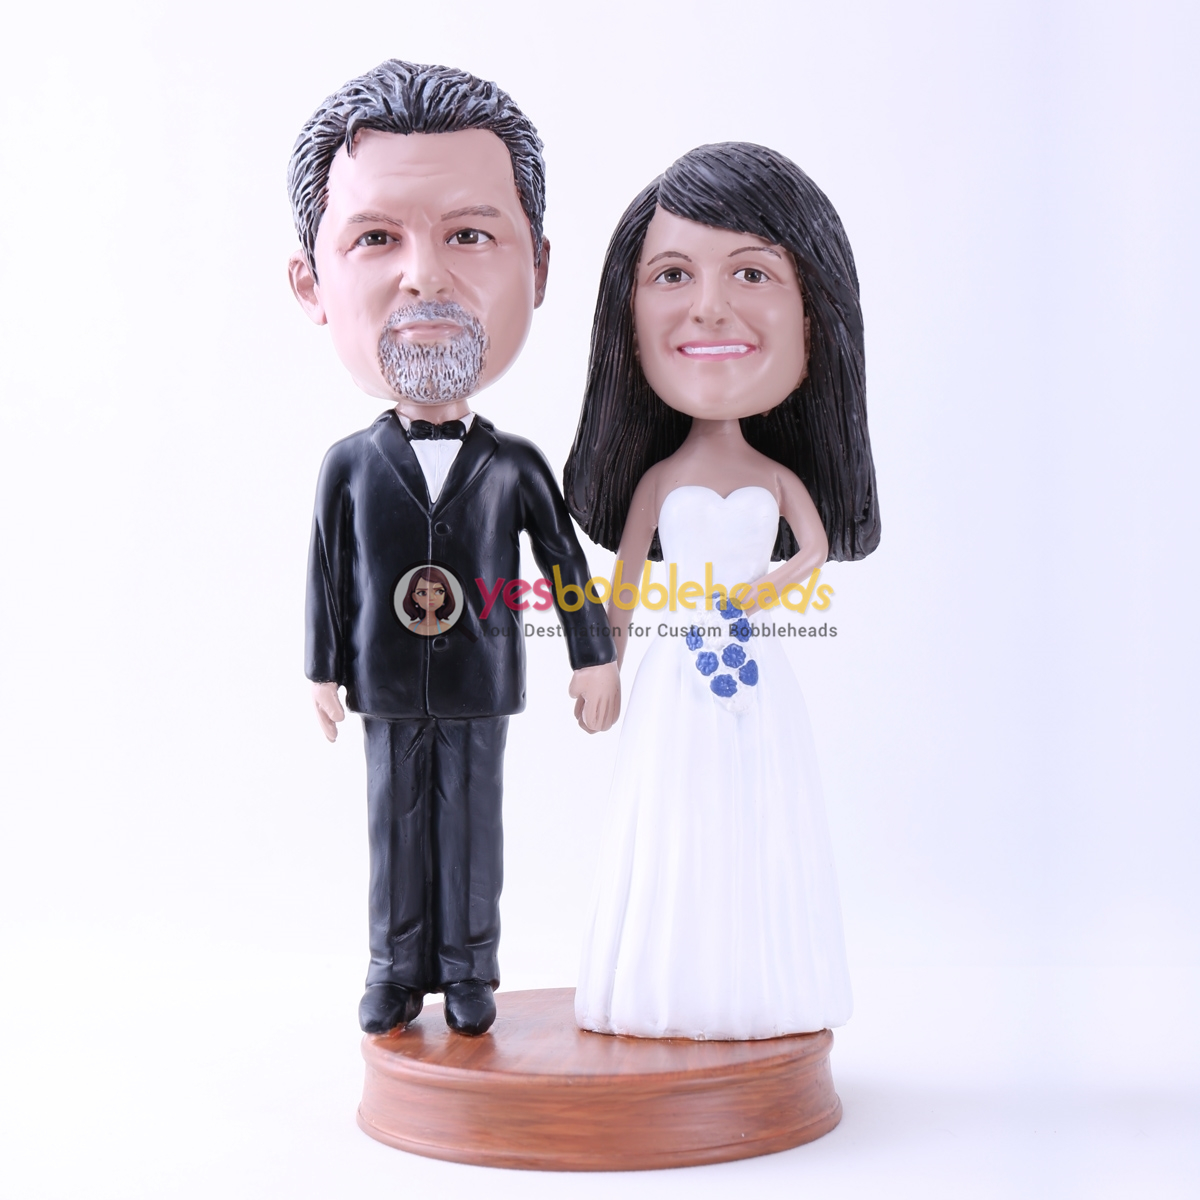 Picture of Custom Bobblehead Doll: Black Suit Groom and White Dressed Bride for Wedding